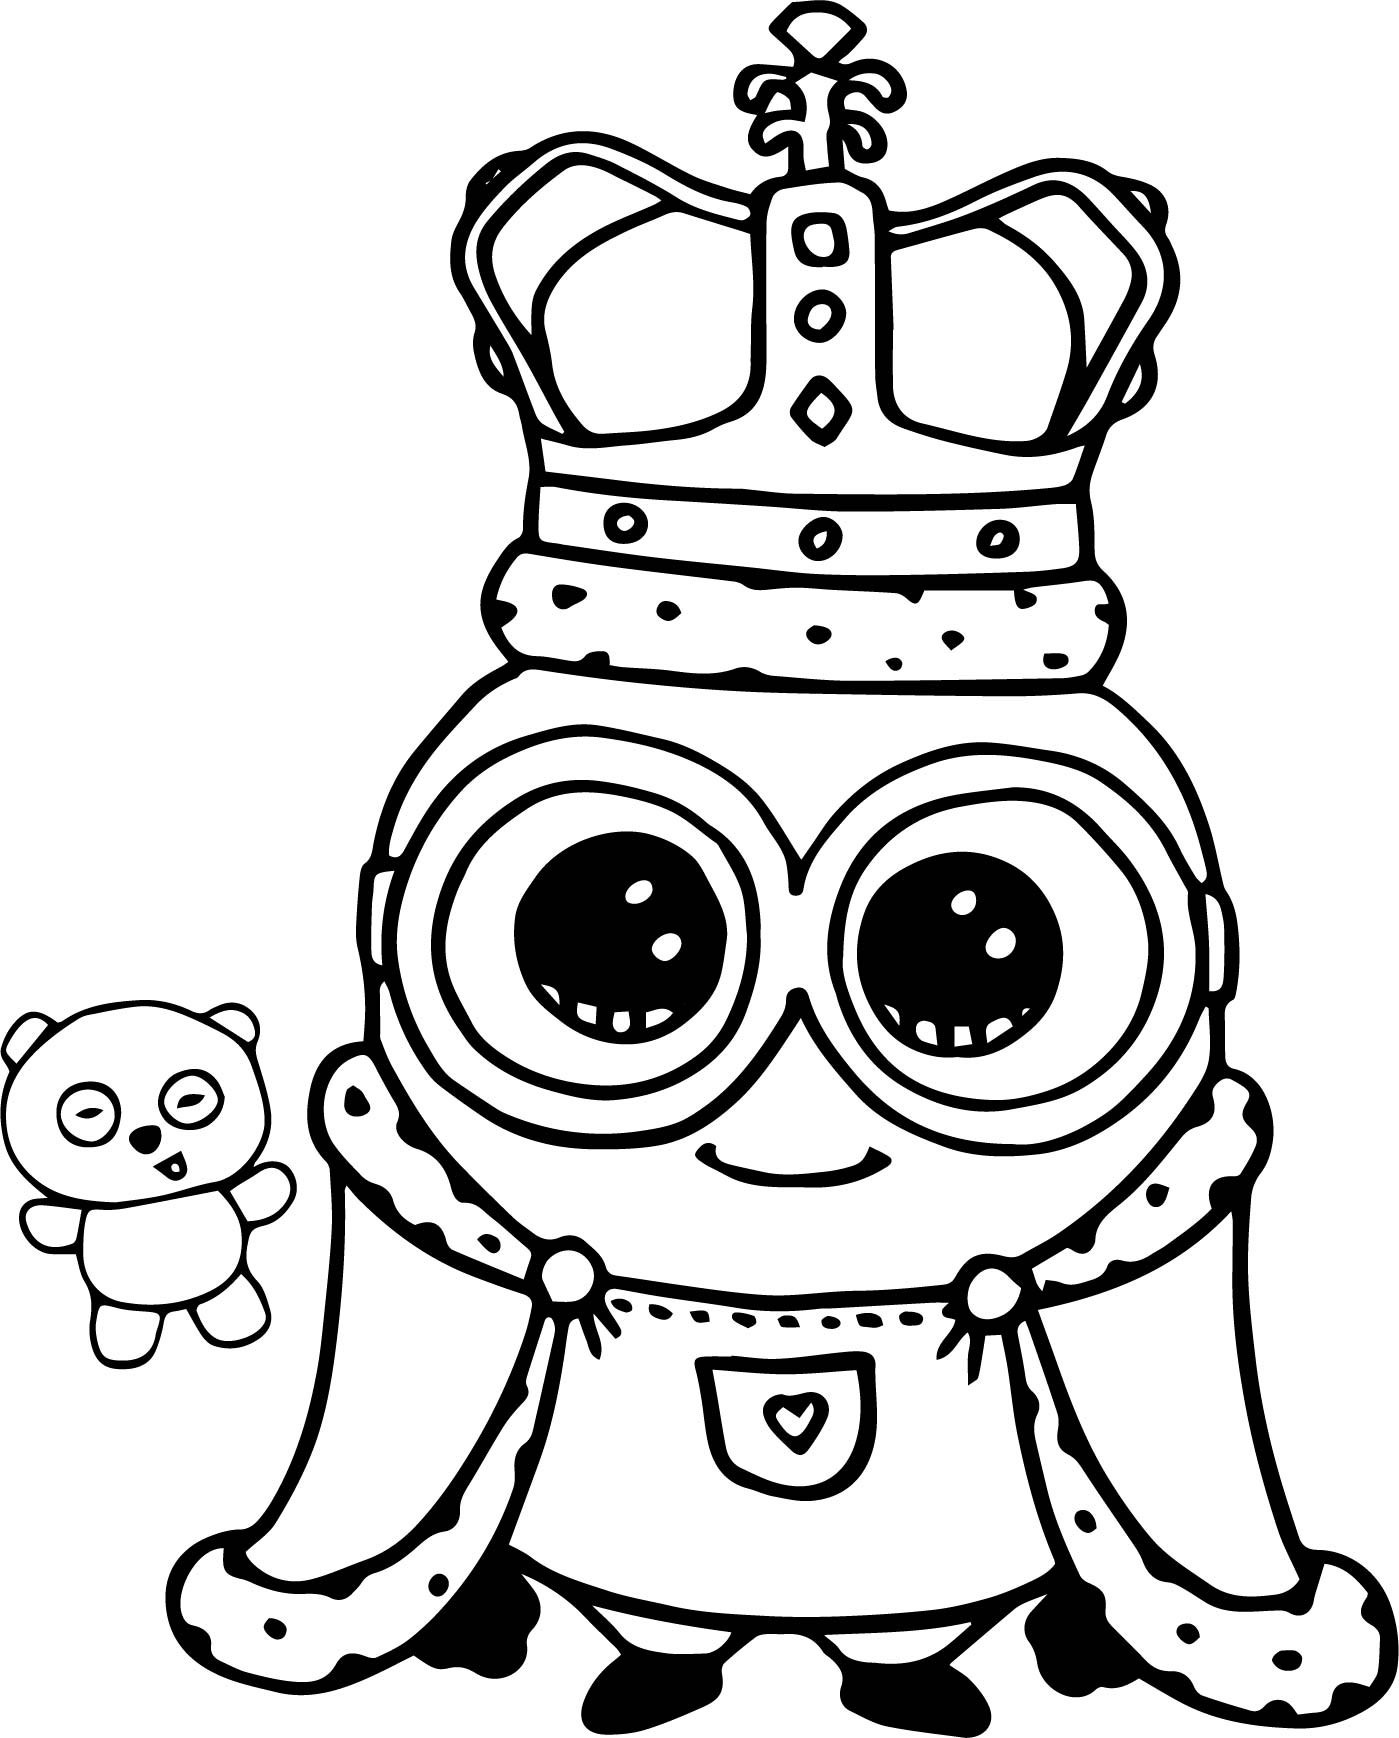 Minion Coloring Pages Bob At Getdrawings Free Download